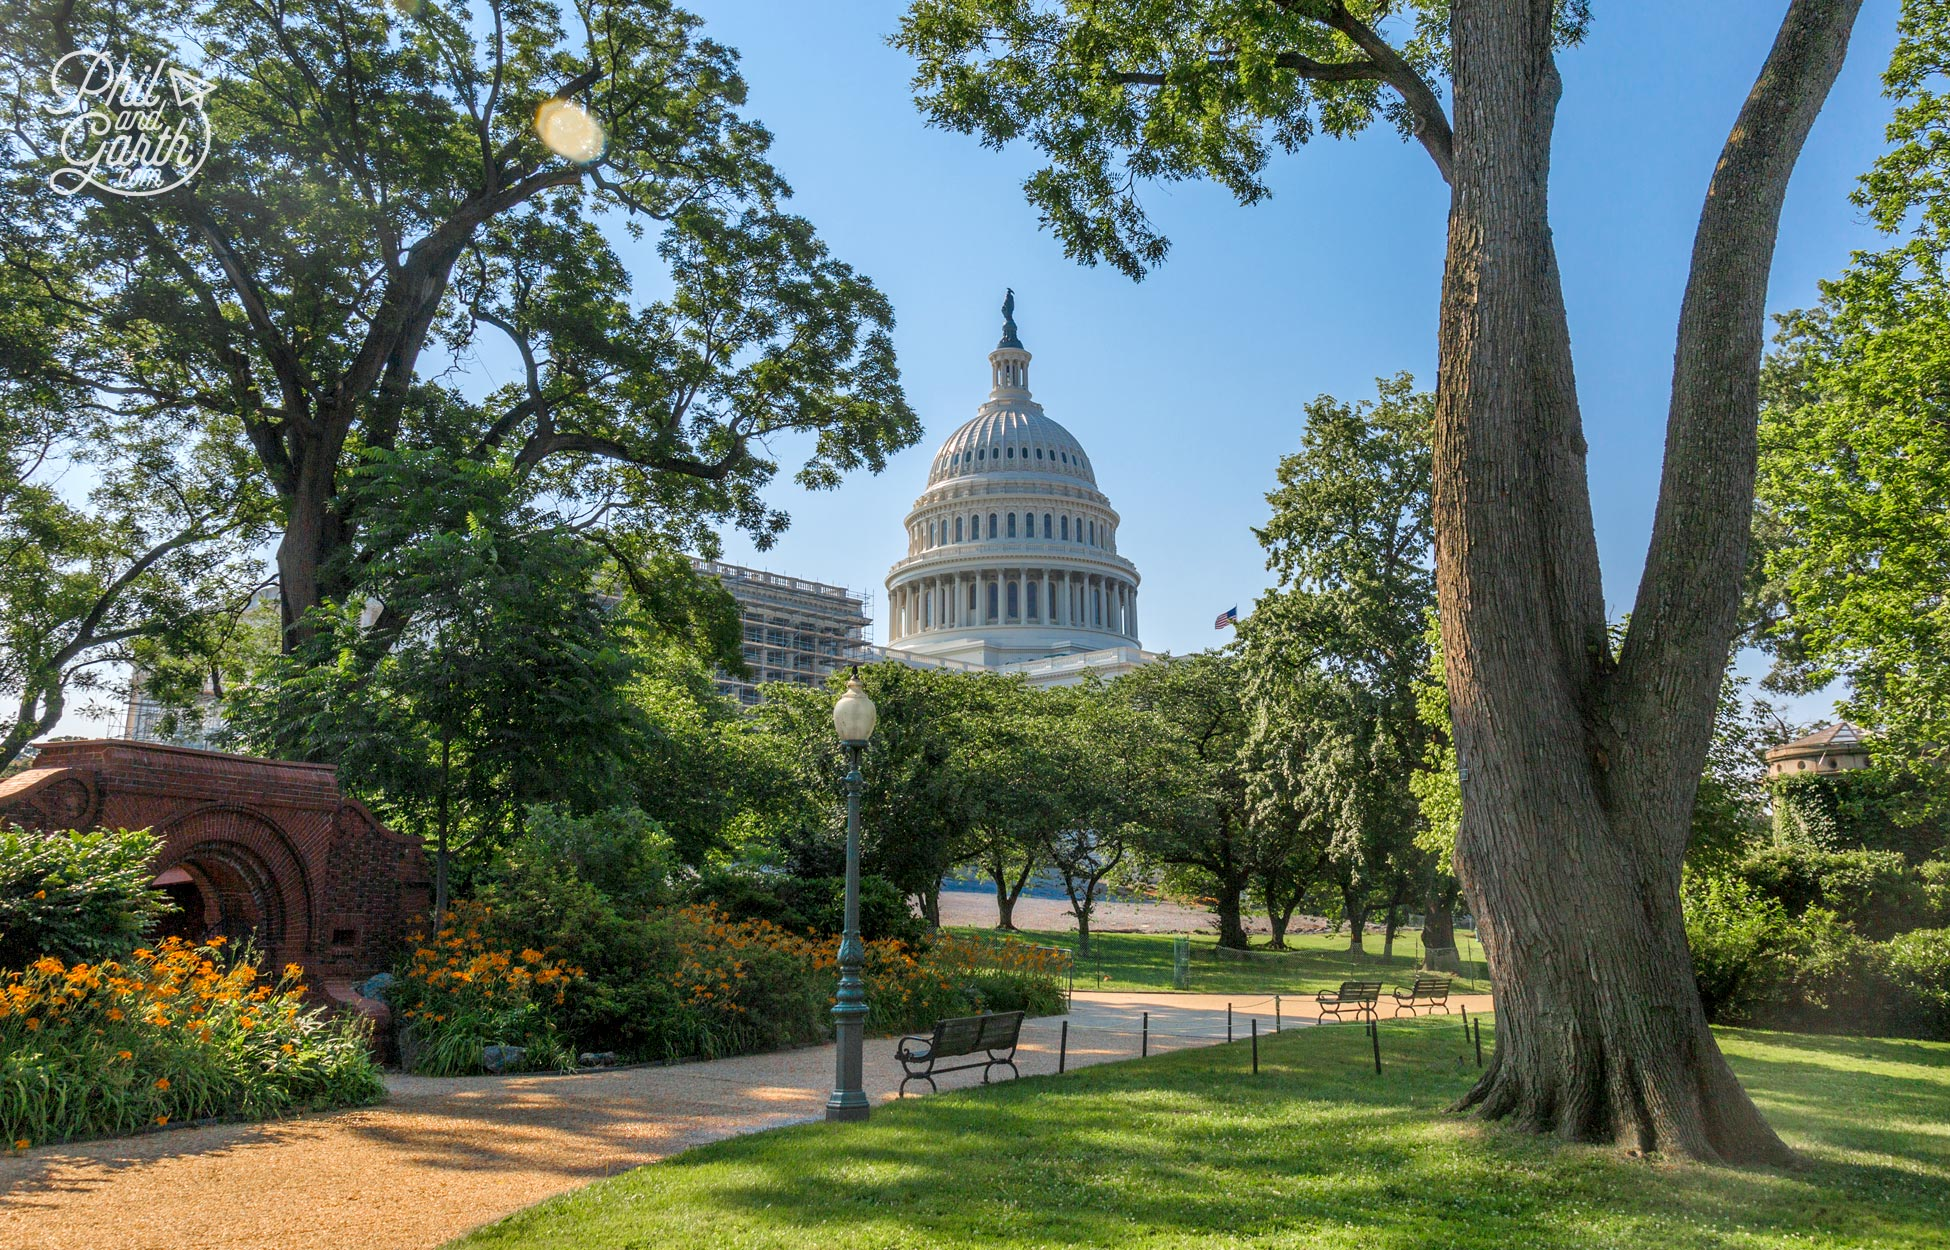 The grounds of the US Capitol are lovely too, there's guided tours of the grounds at 1pm Mon-Sat.